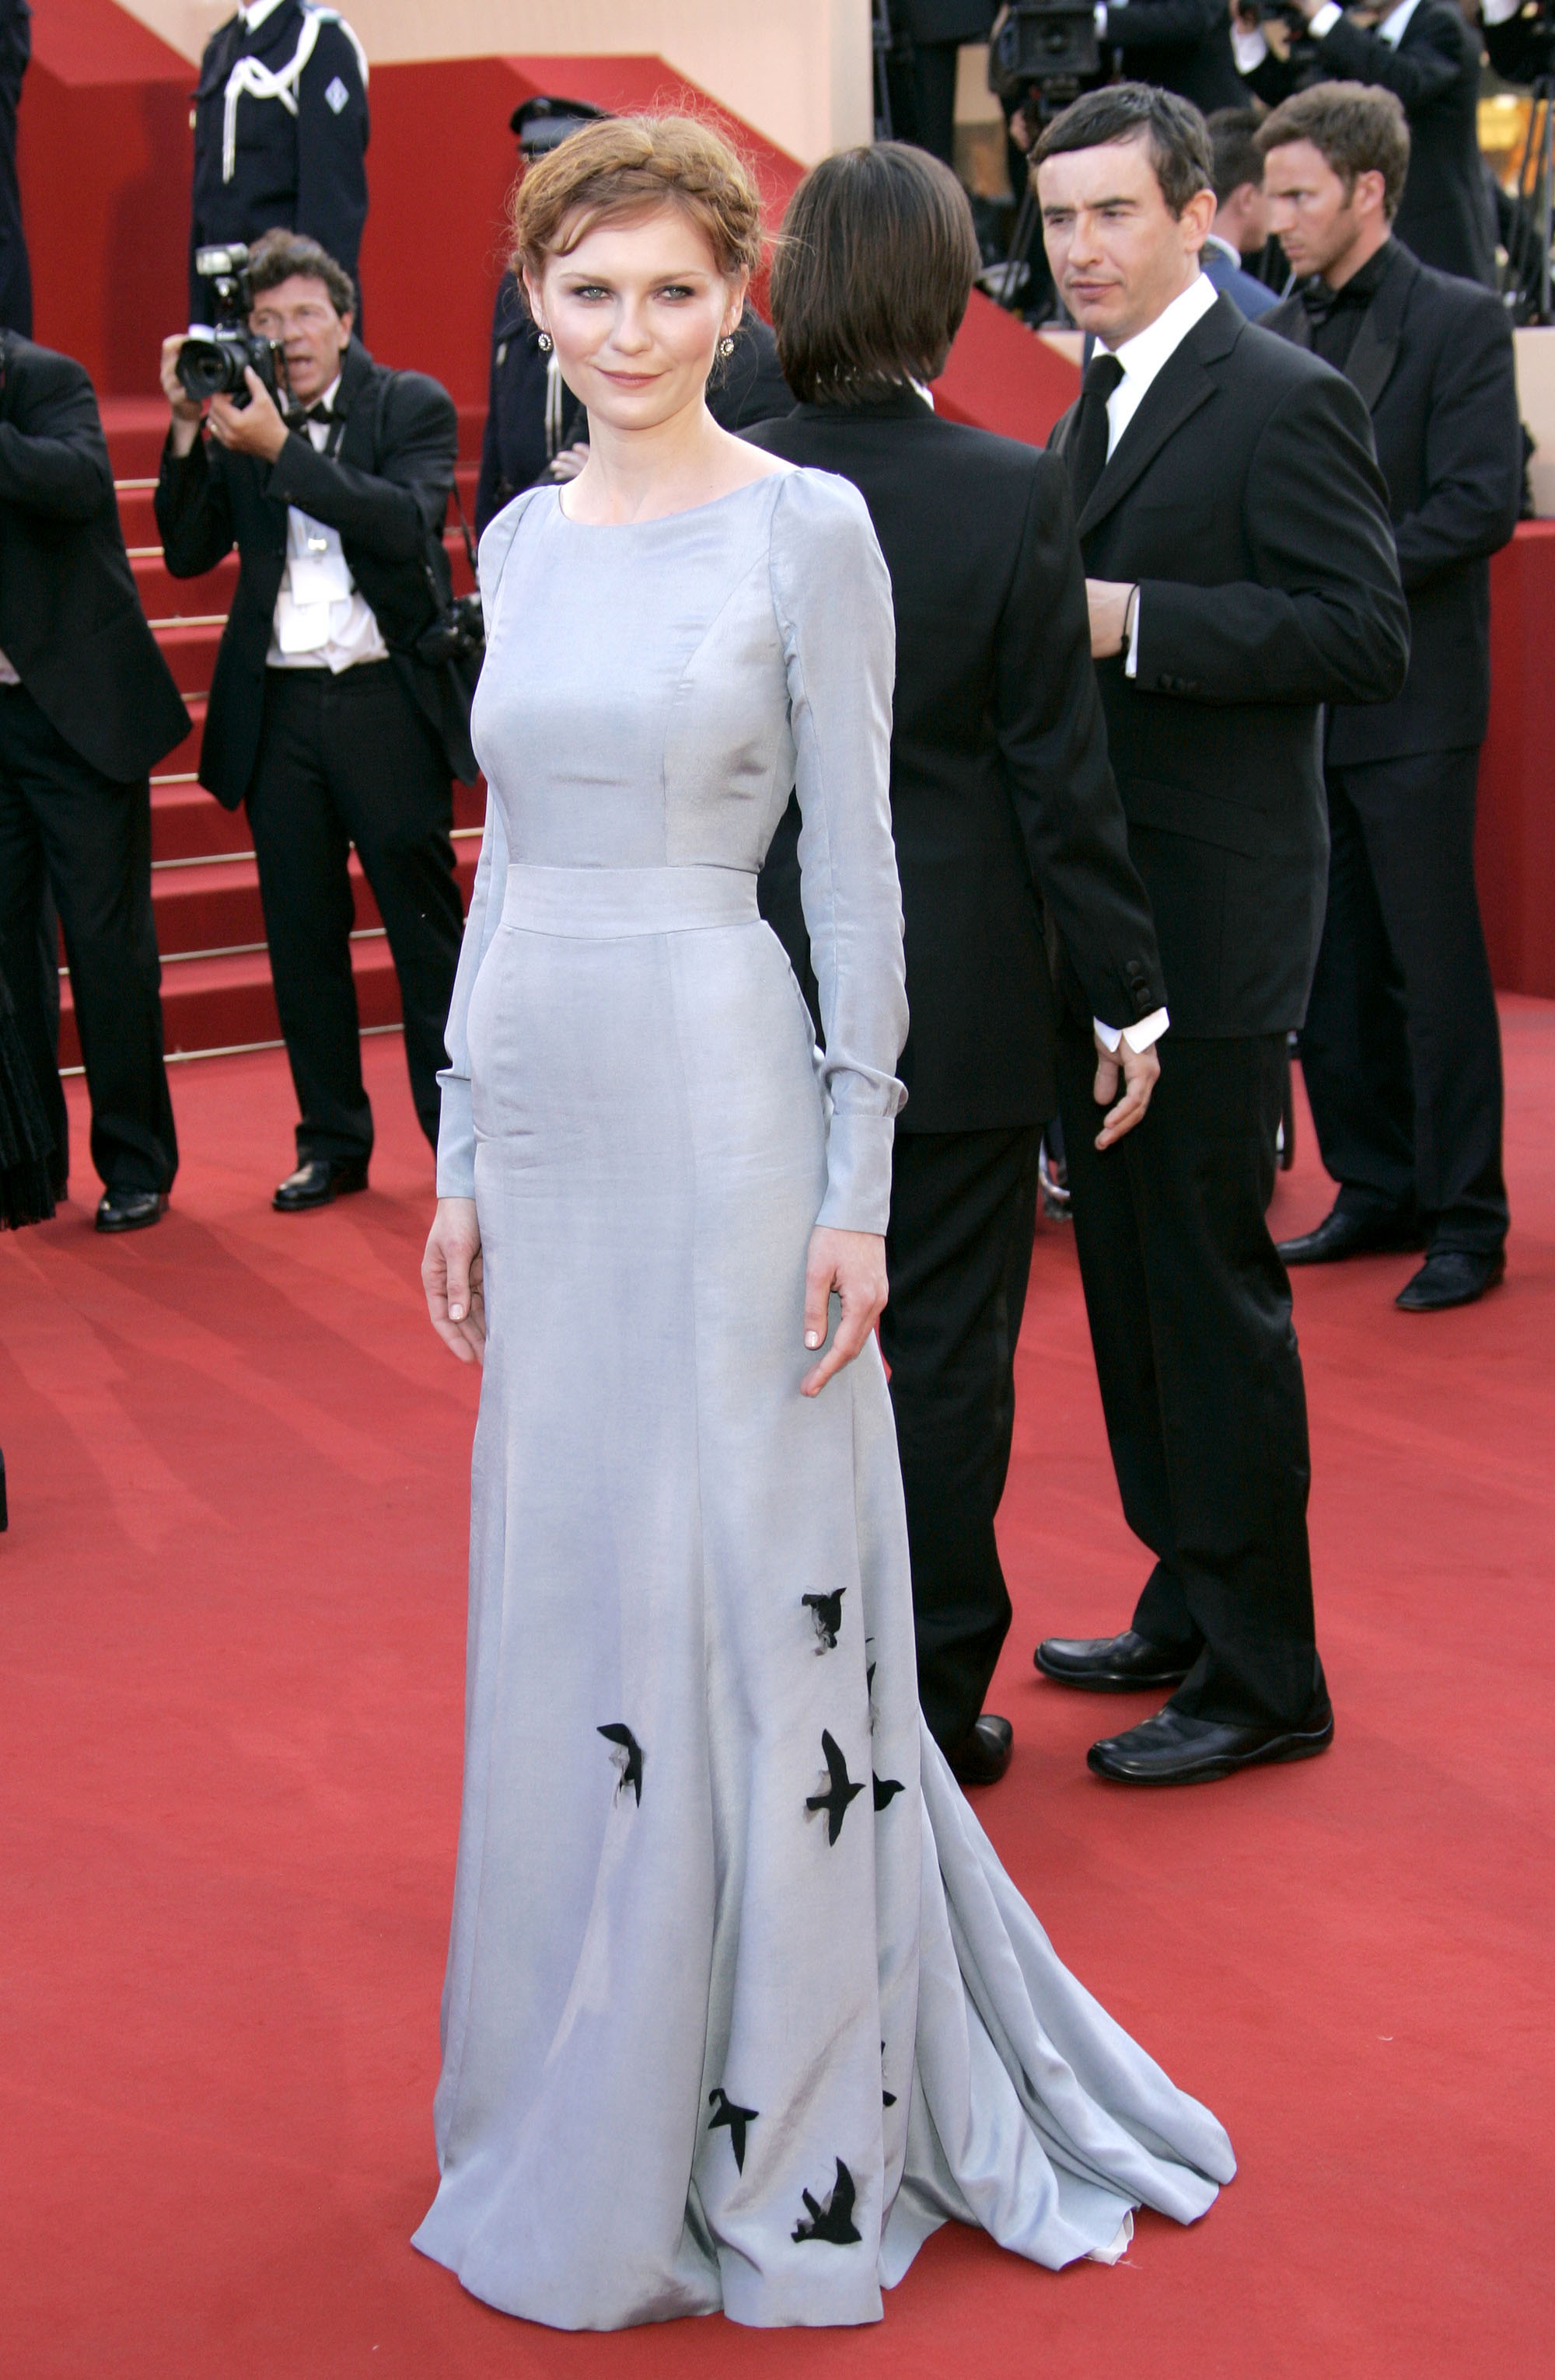 kirsten dunst on the red carpet at the cannes premiere of marie antoinette